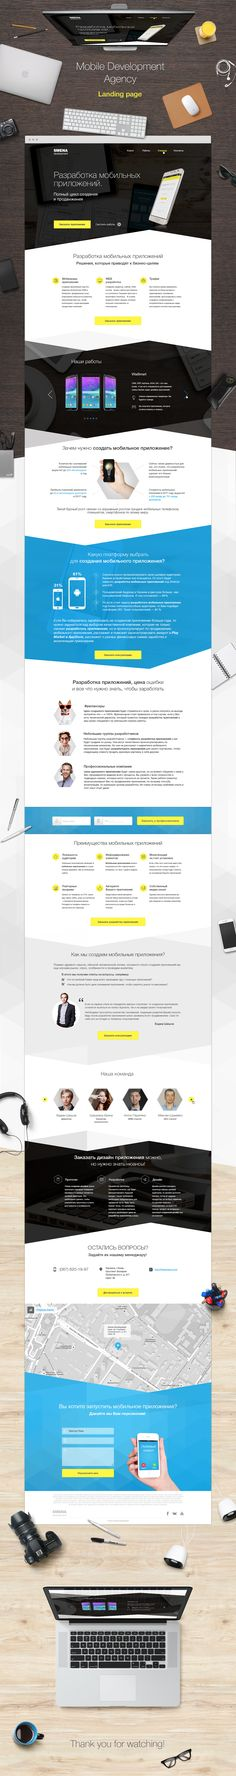 Landing page for the mobile development agency